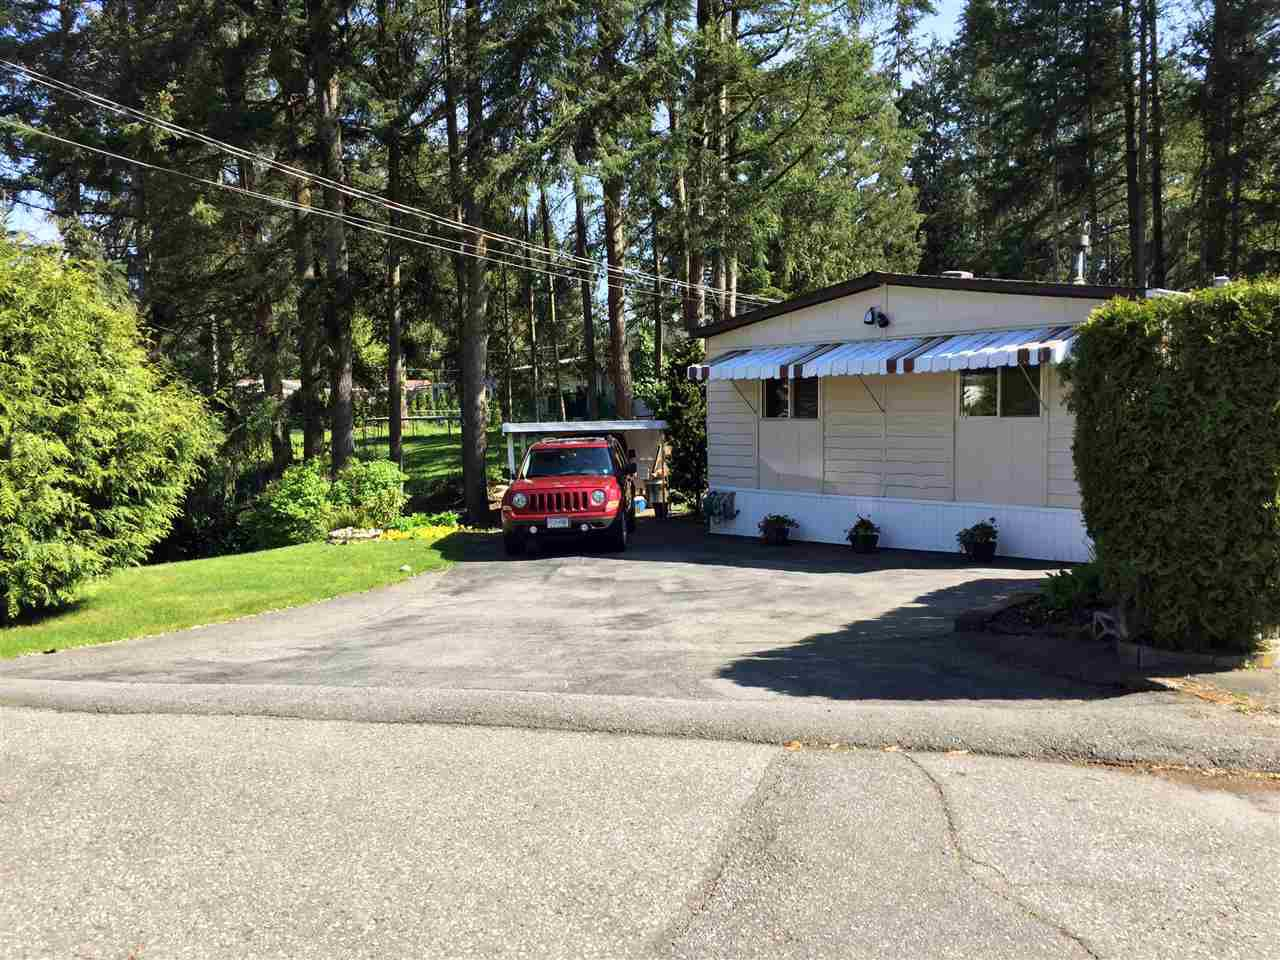 """Main Photo: 72 3931 198TH Street in Langley: Brookswood Langley Manufactured Home for sale in """"Brookswood Estates"""" : MLS®# R2162495"""